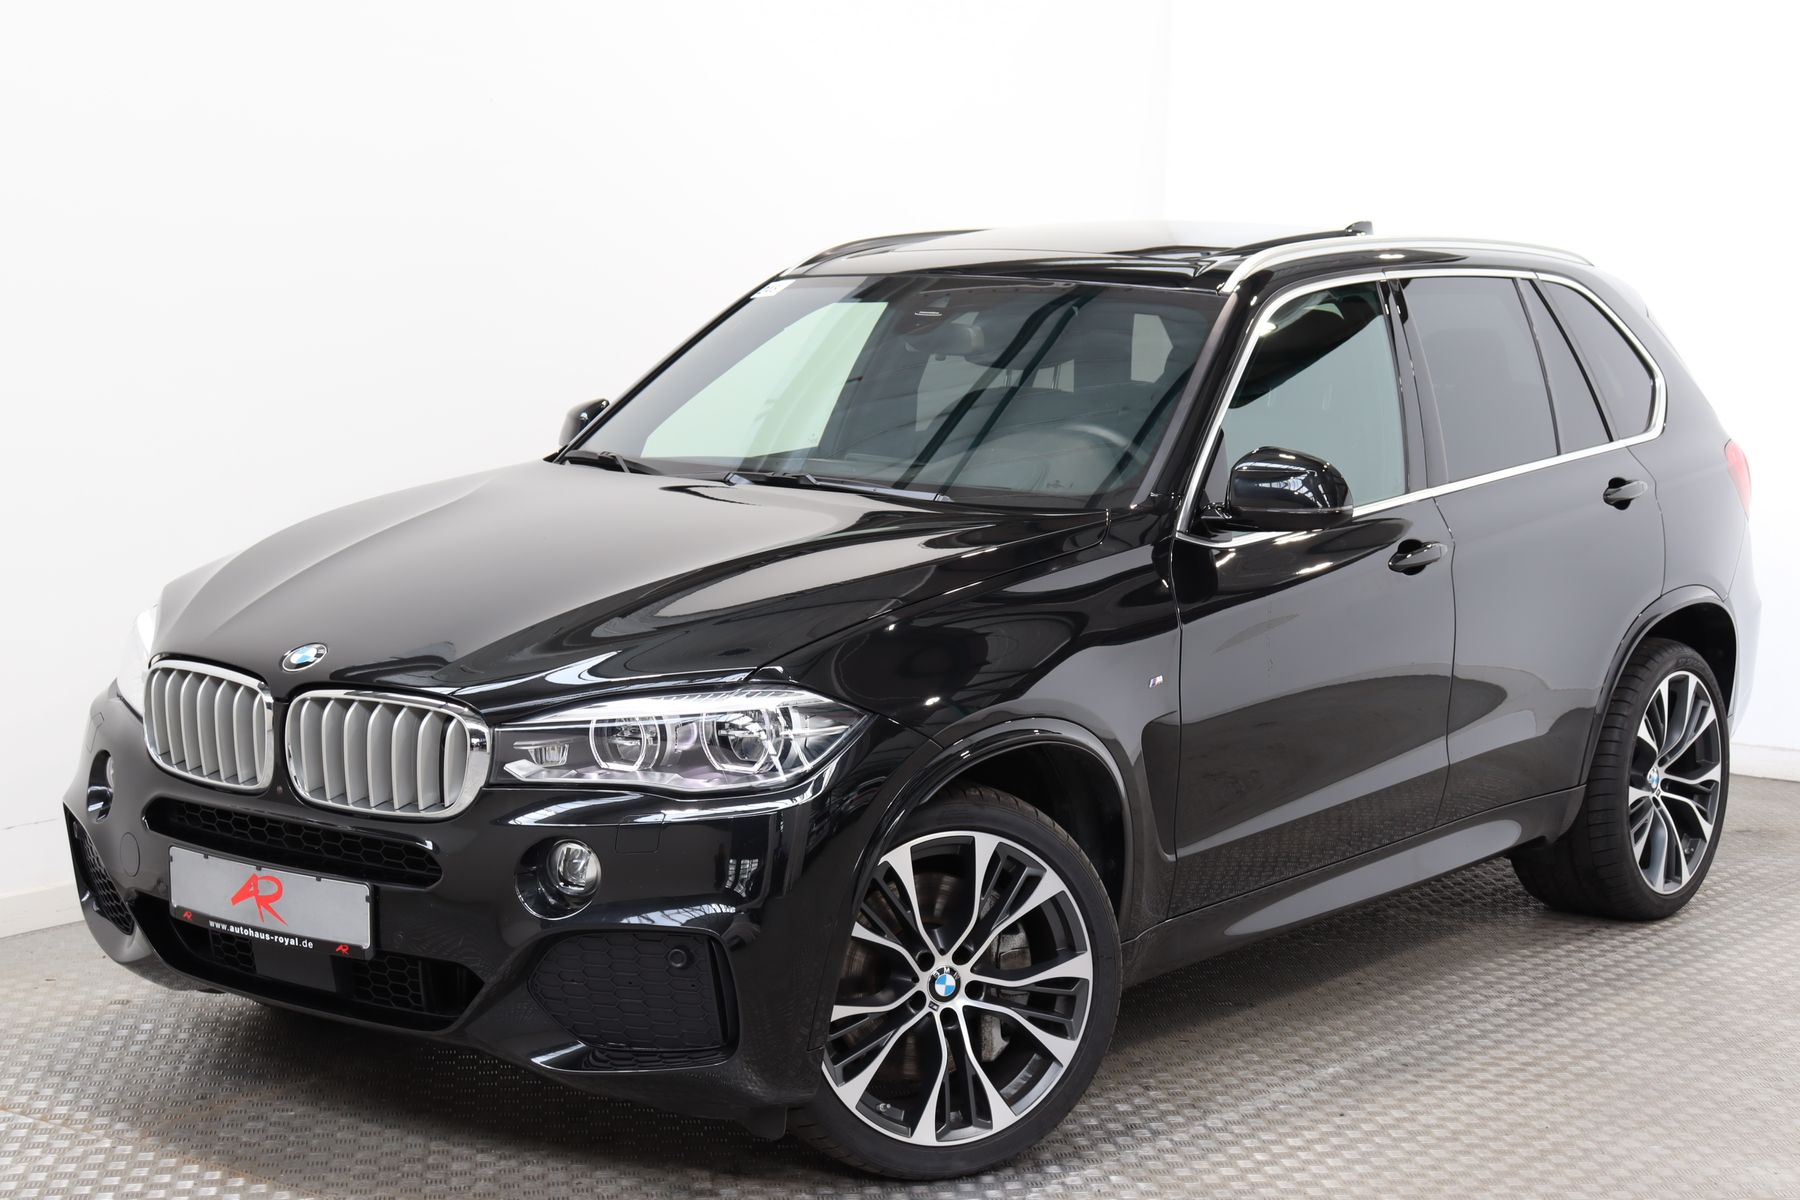 BMW X5 xDrive50i M SPORT BANG+O HIGH END,NIGHTVISION, Jahr 2018, Benzin